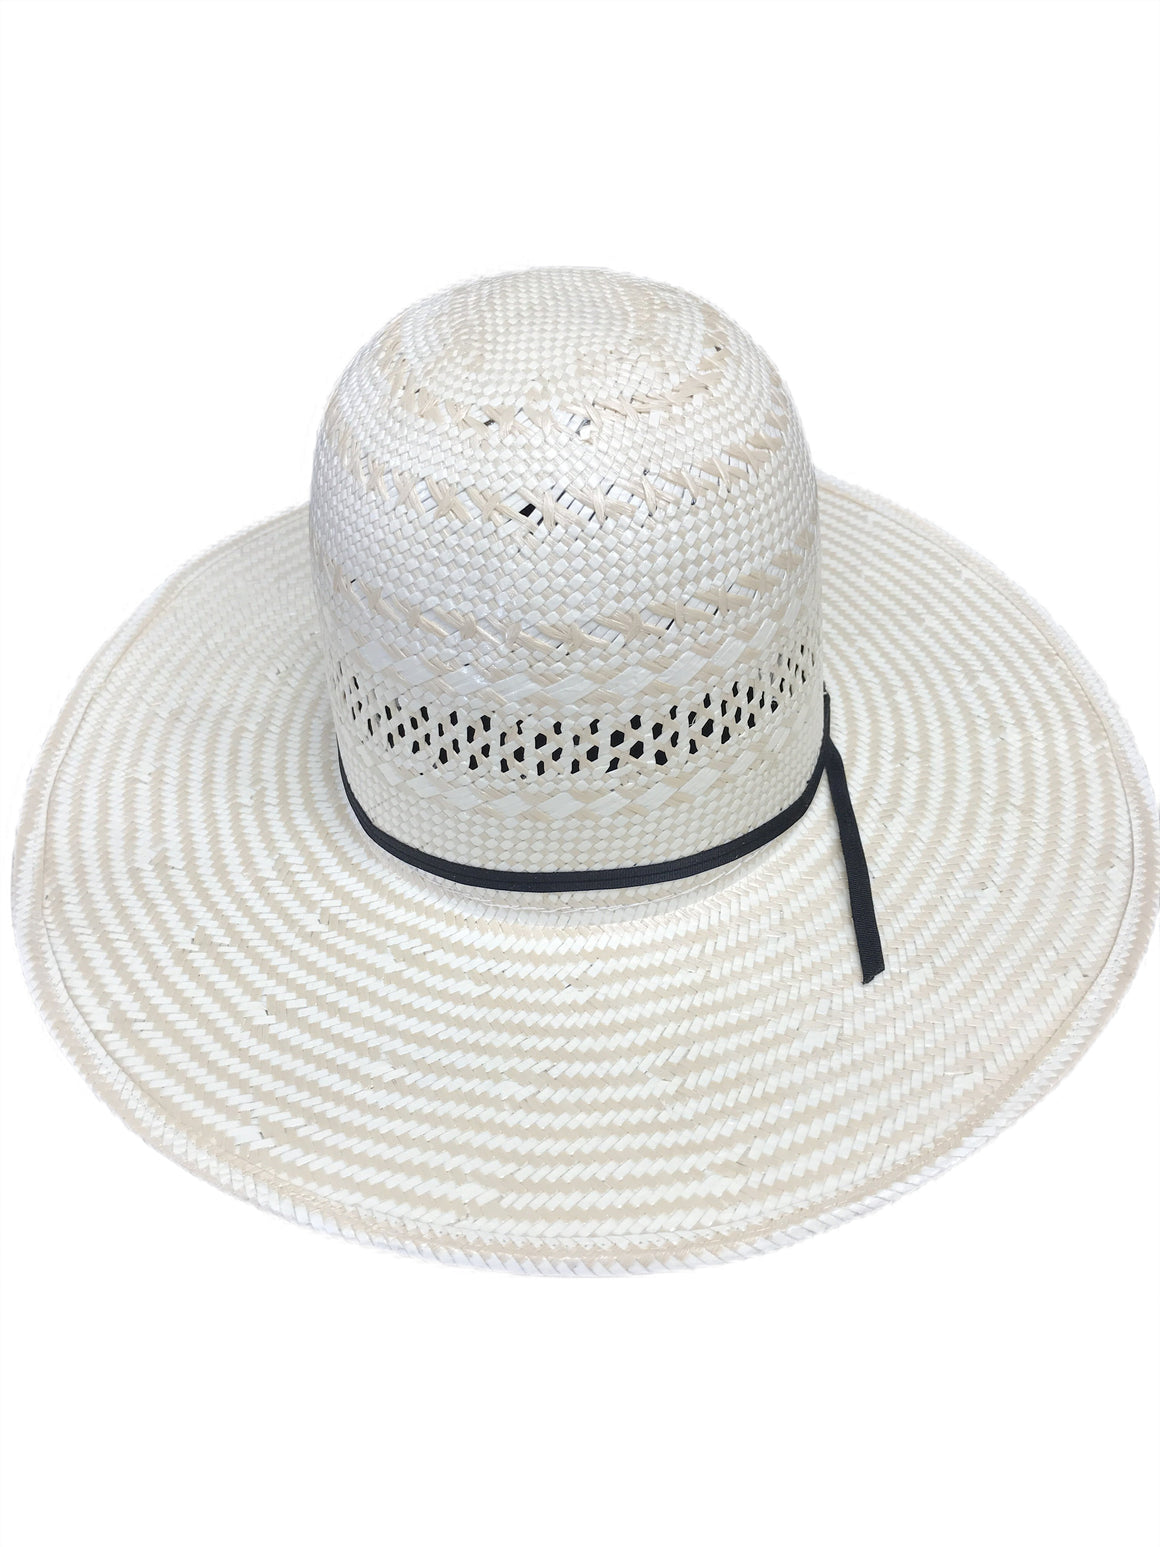 American Hat Co. Straw Hats - #845